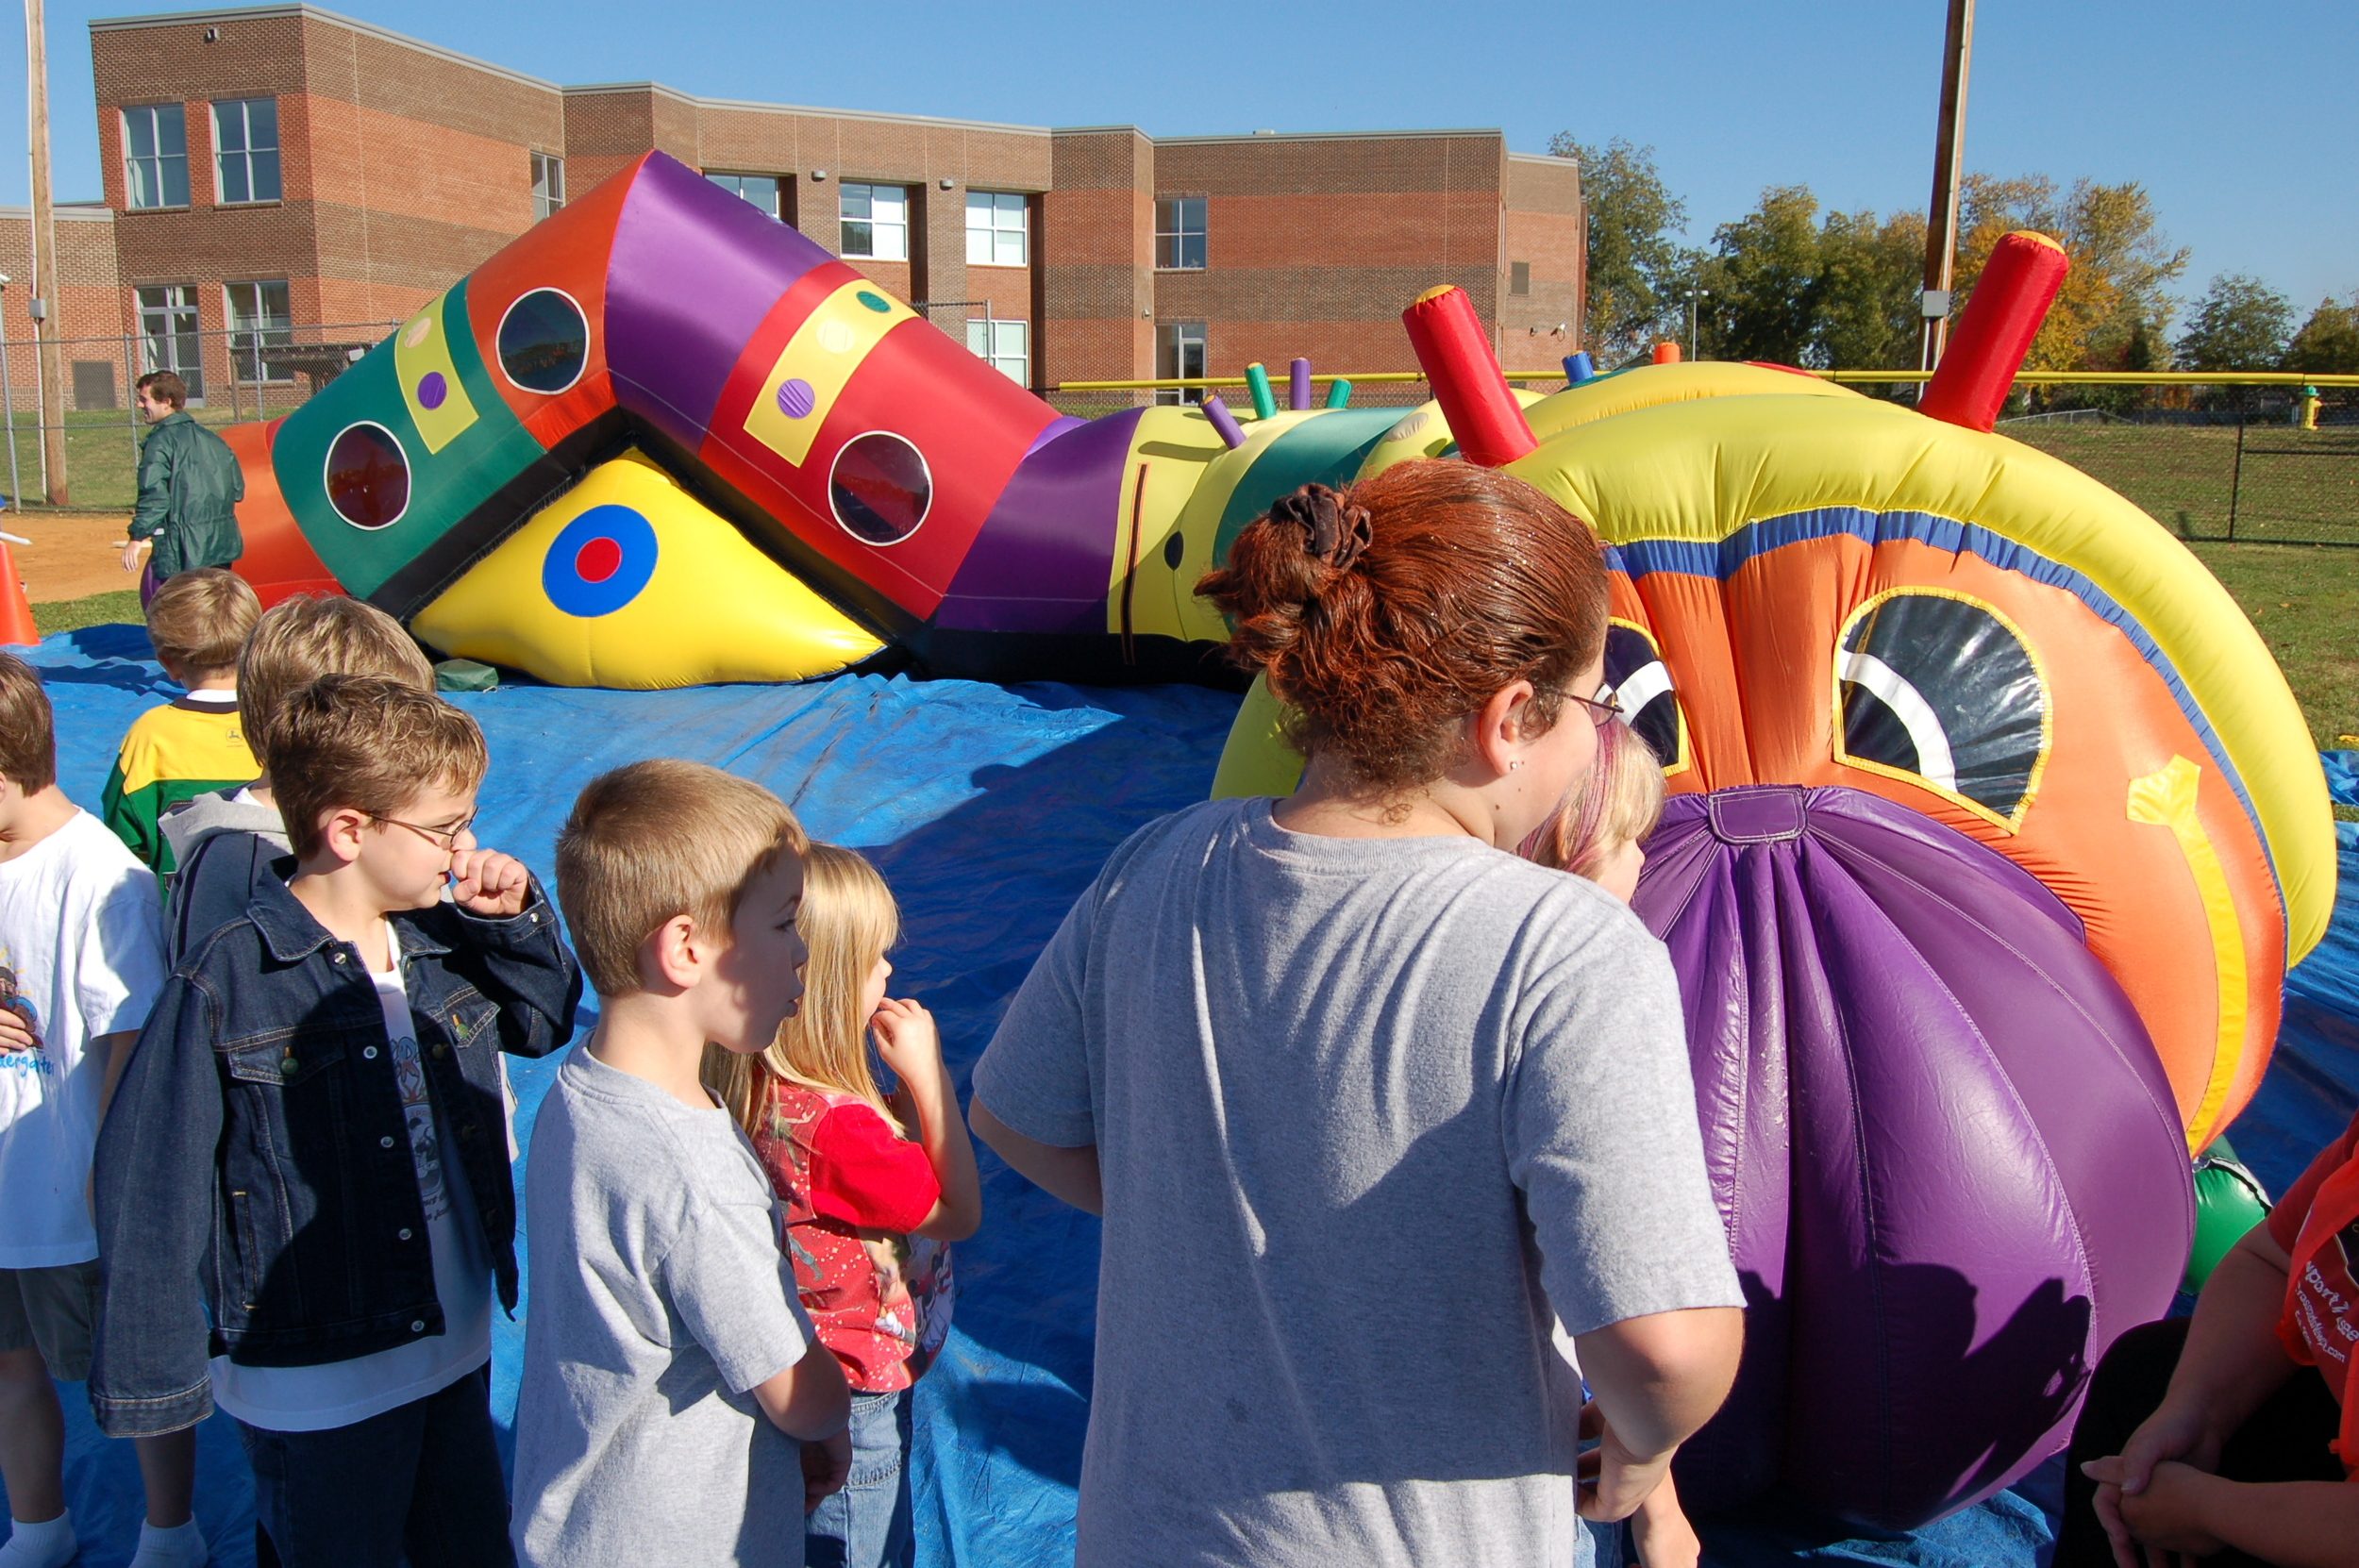 55ft Centipede Inflatable - This is a play lite and only weighs around 100 lbs. - Good shape - $1200